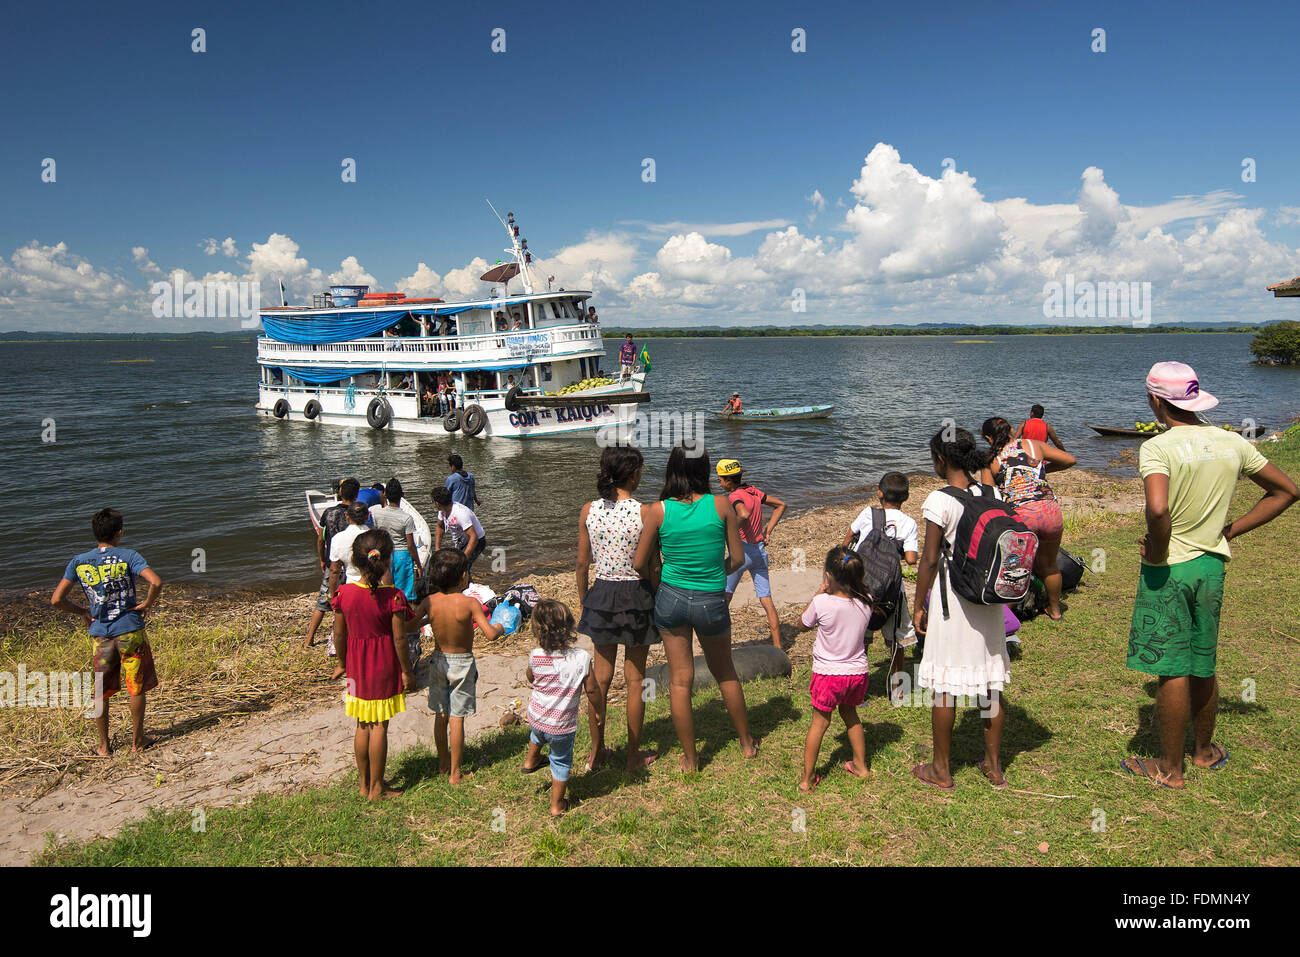 Playground - typical boat reaches the shore Apace Community of the Rio Tapajos - Stock Image